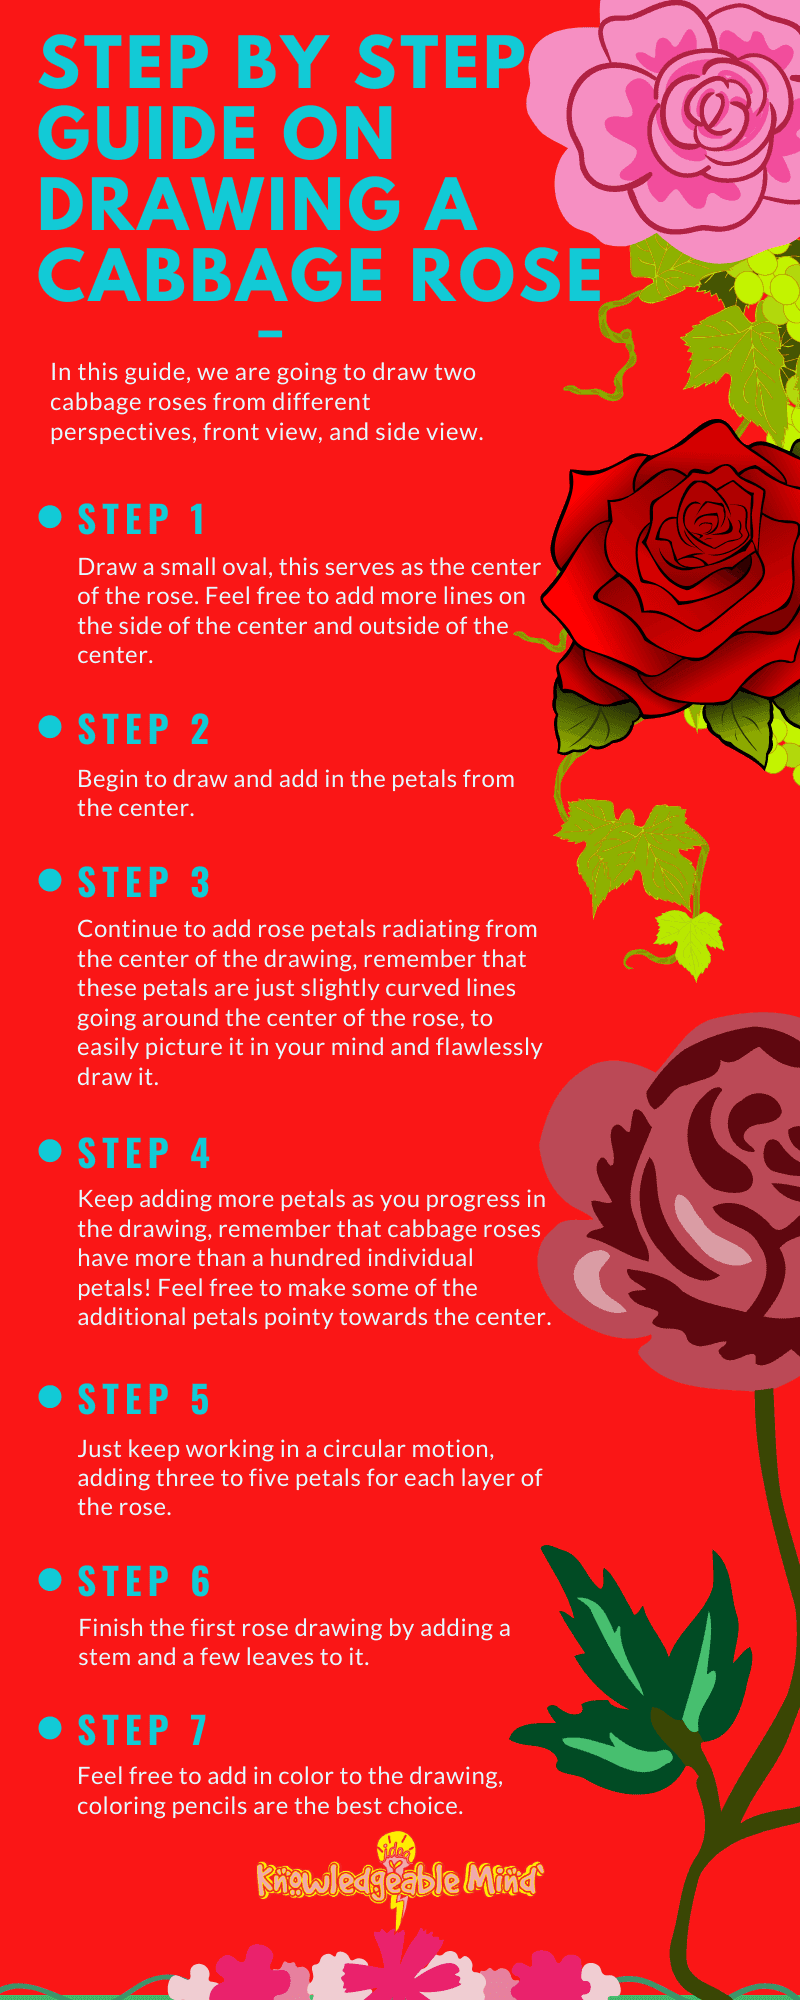 how to draw a cabbage rose (infographic)